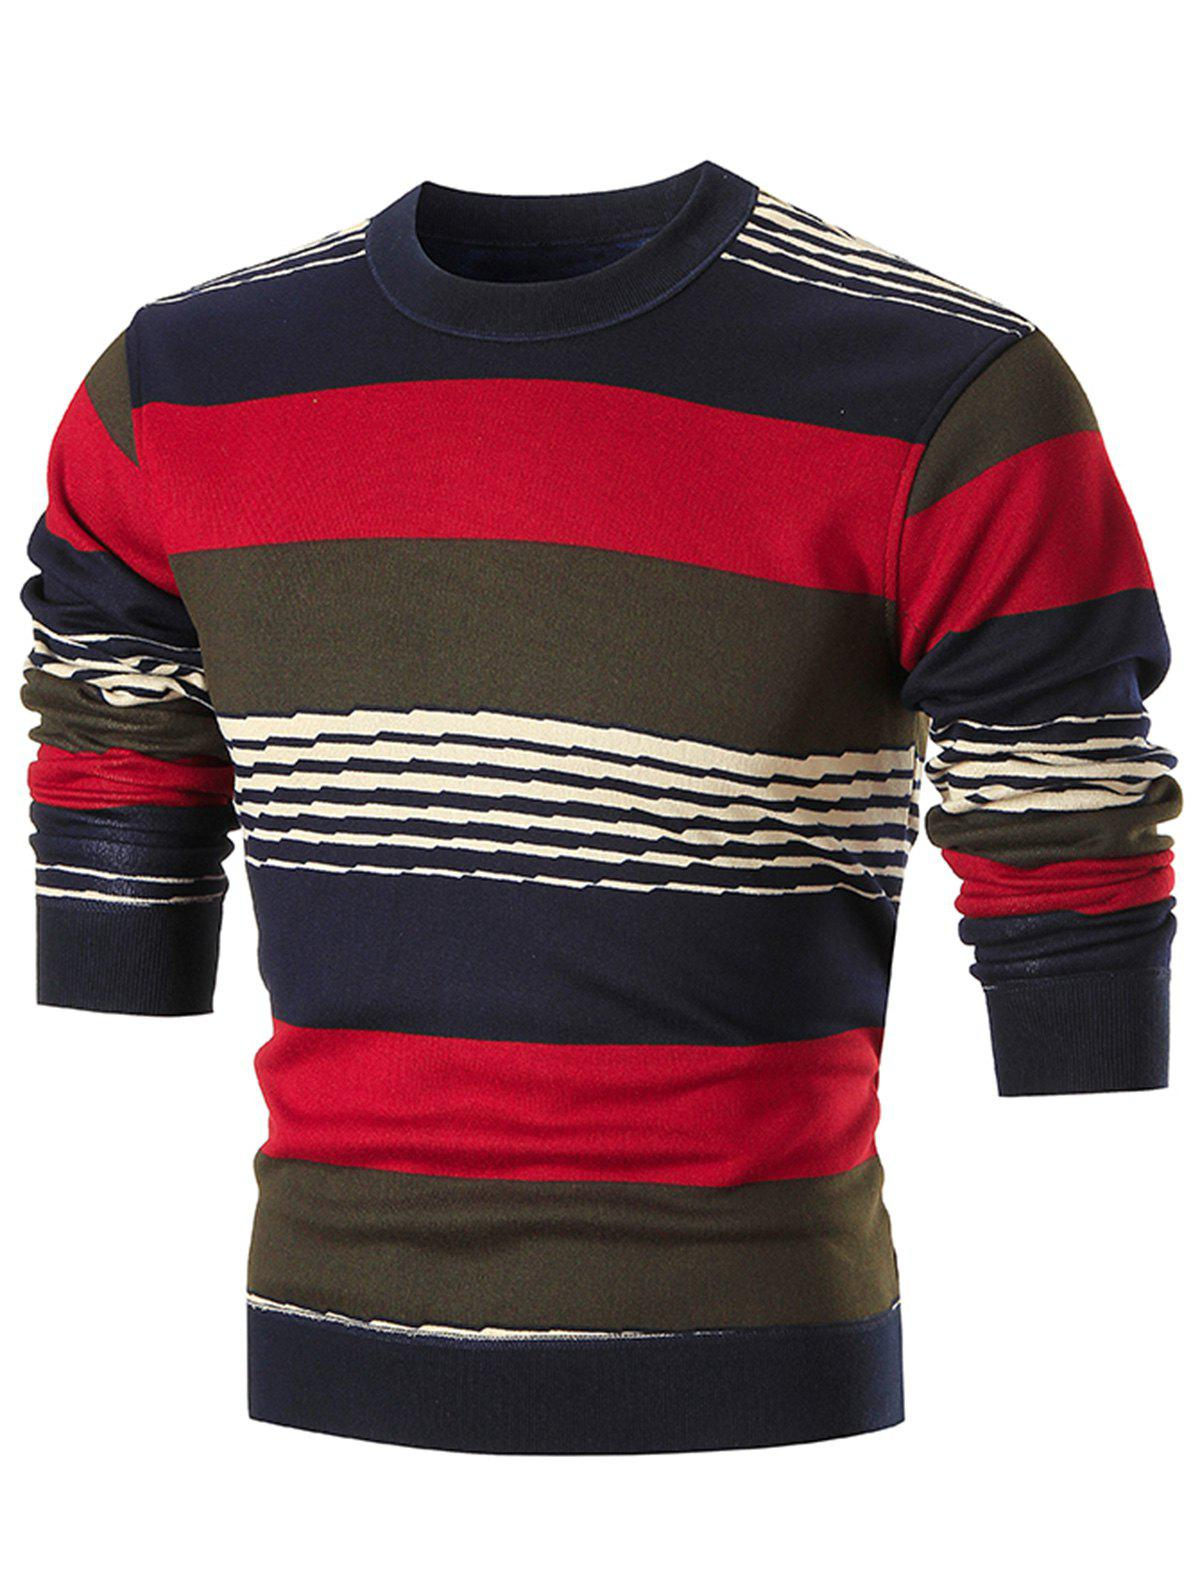 Multi-colored Wide Stripe Pullover Sweater - RED 2XL